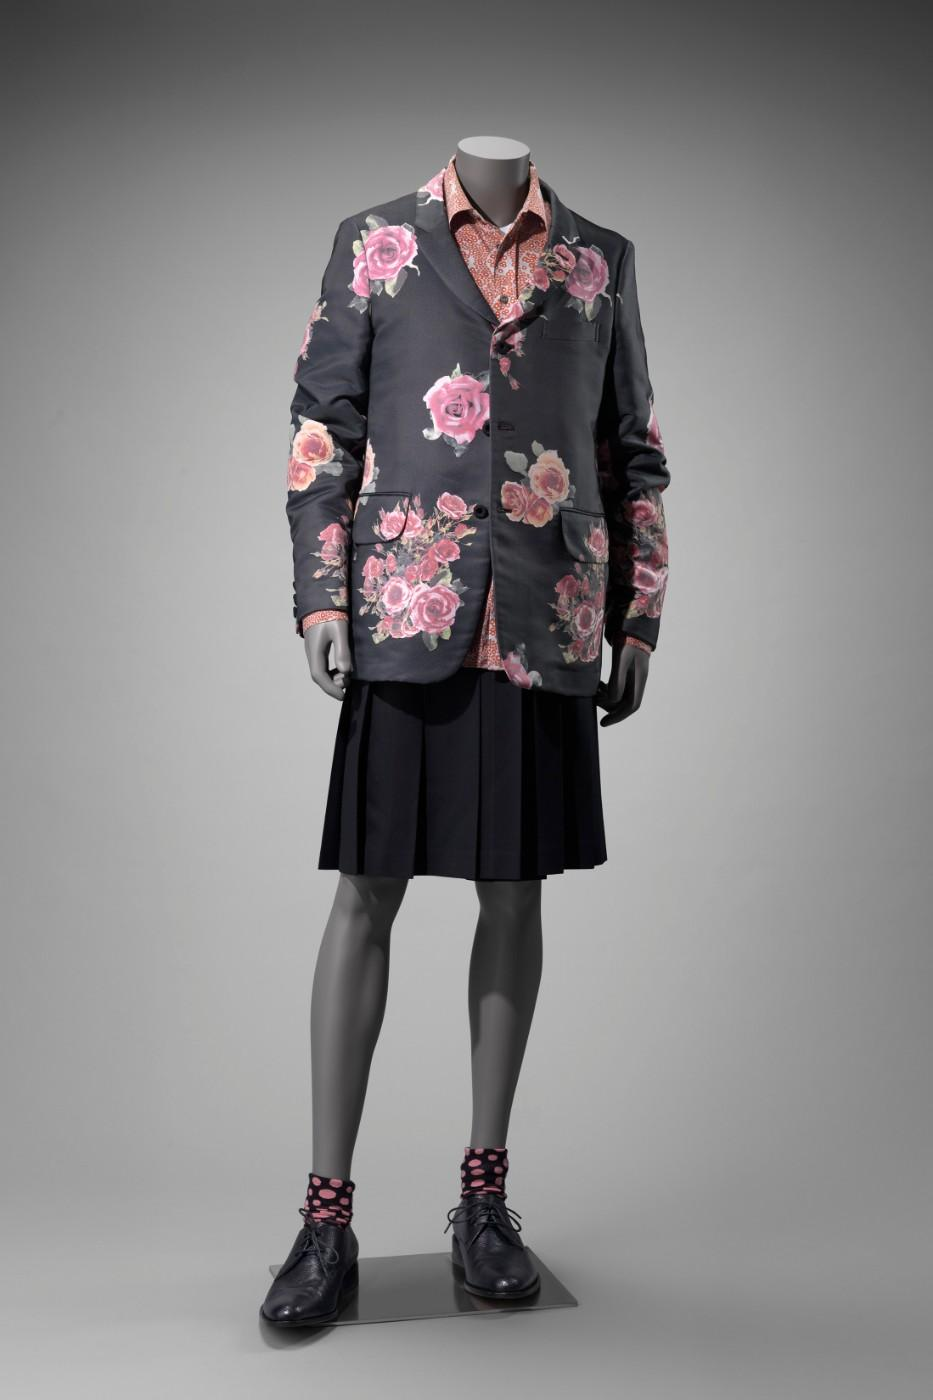 Blazer and kilt, 2012. Comme des Garcons, Ltd. (Japanese, founded in 1969).